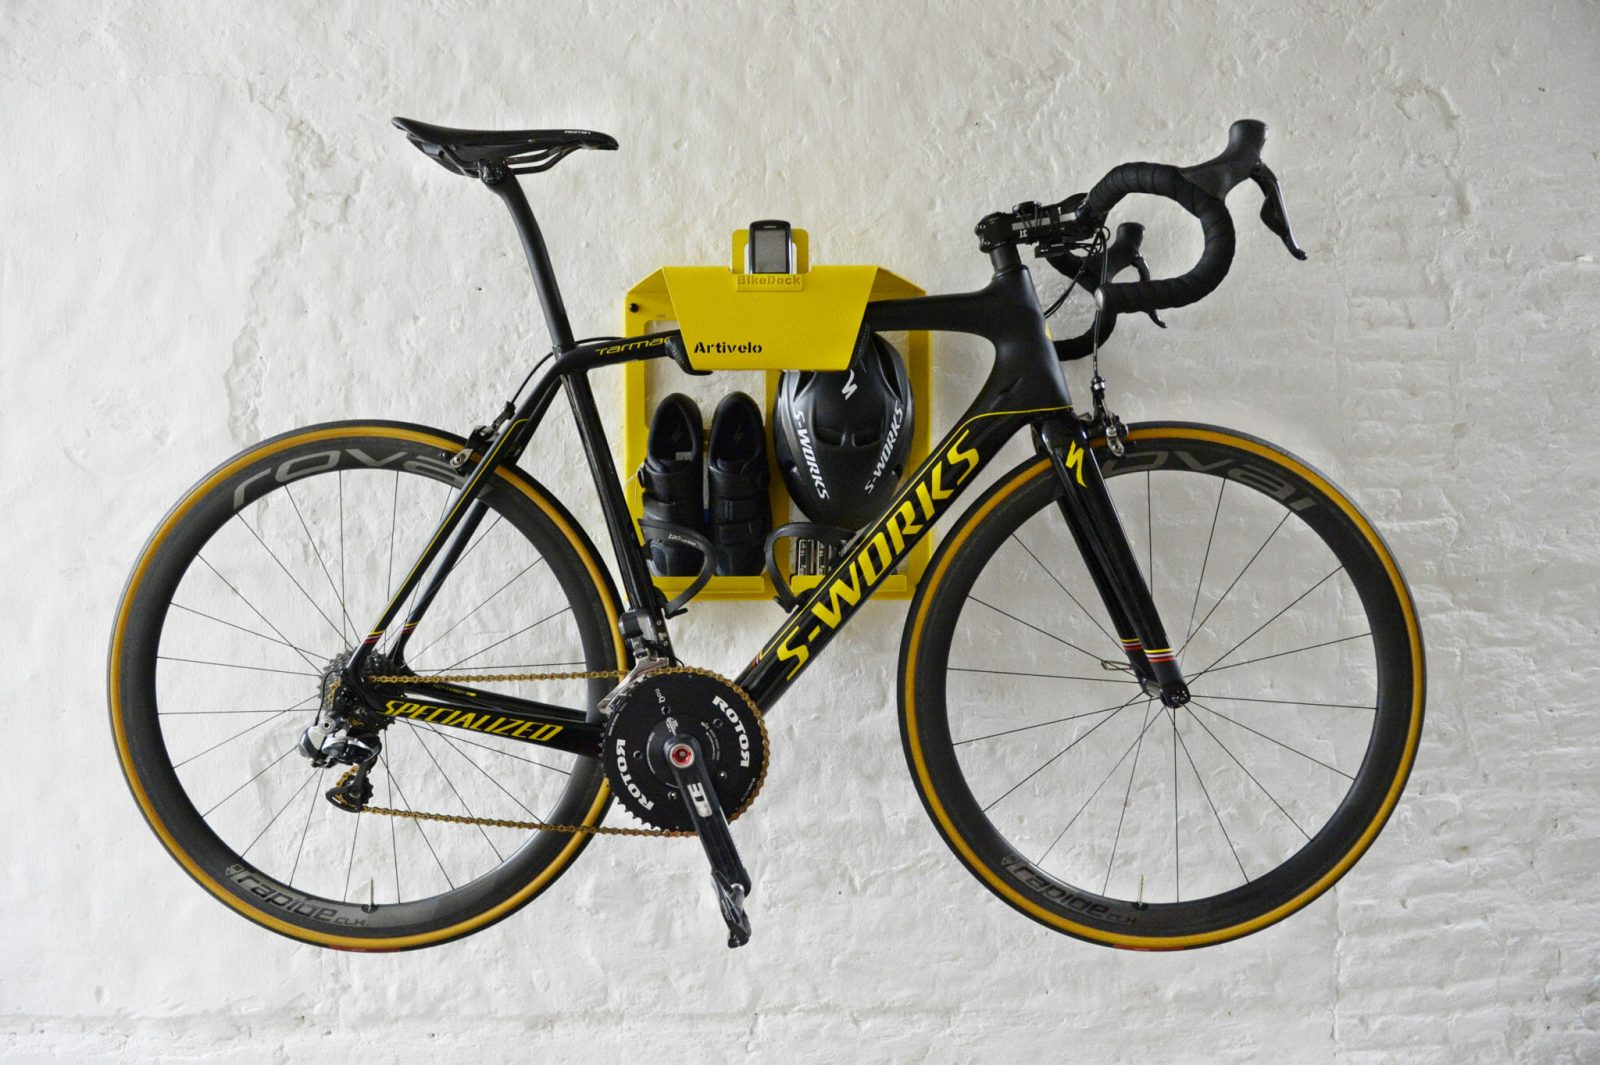 Tour de France Limited Edition